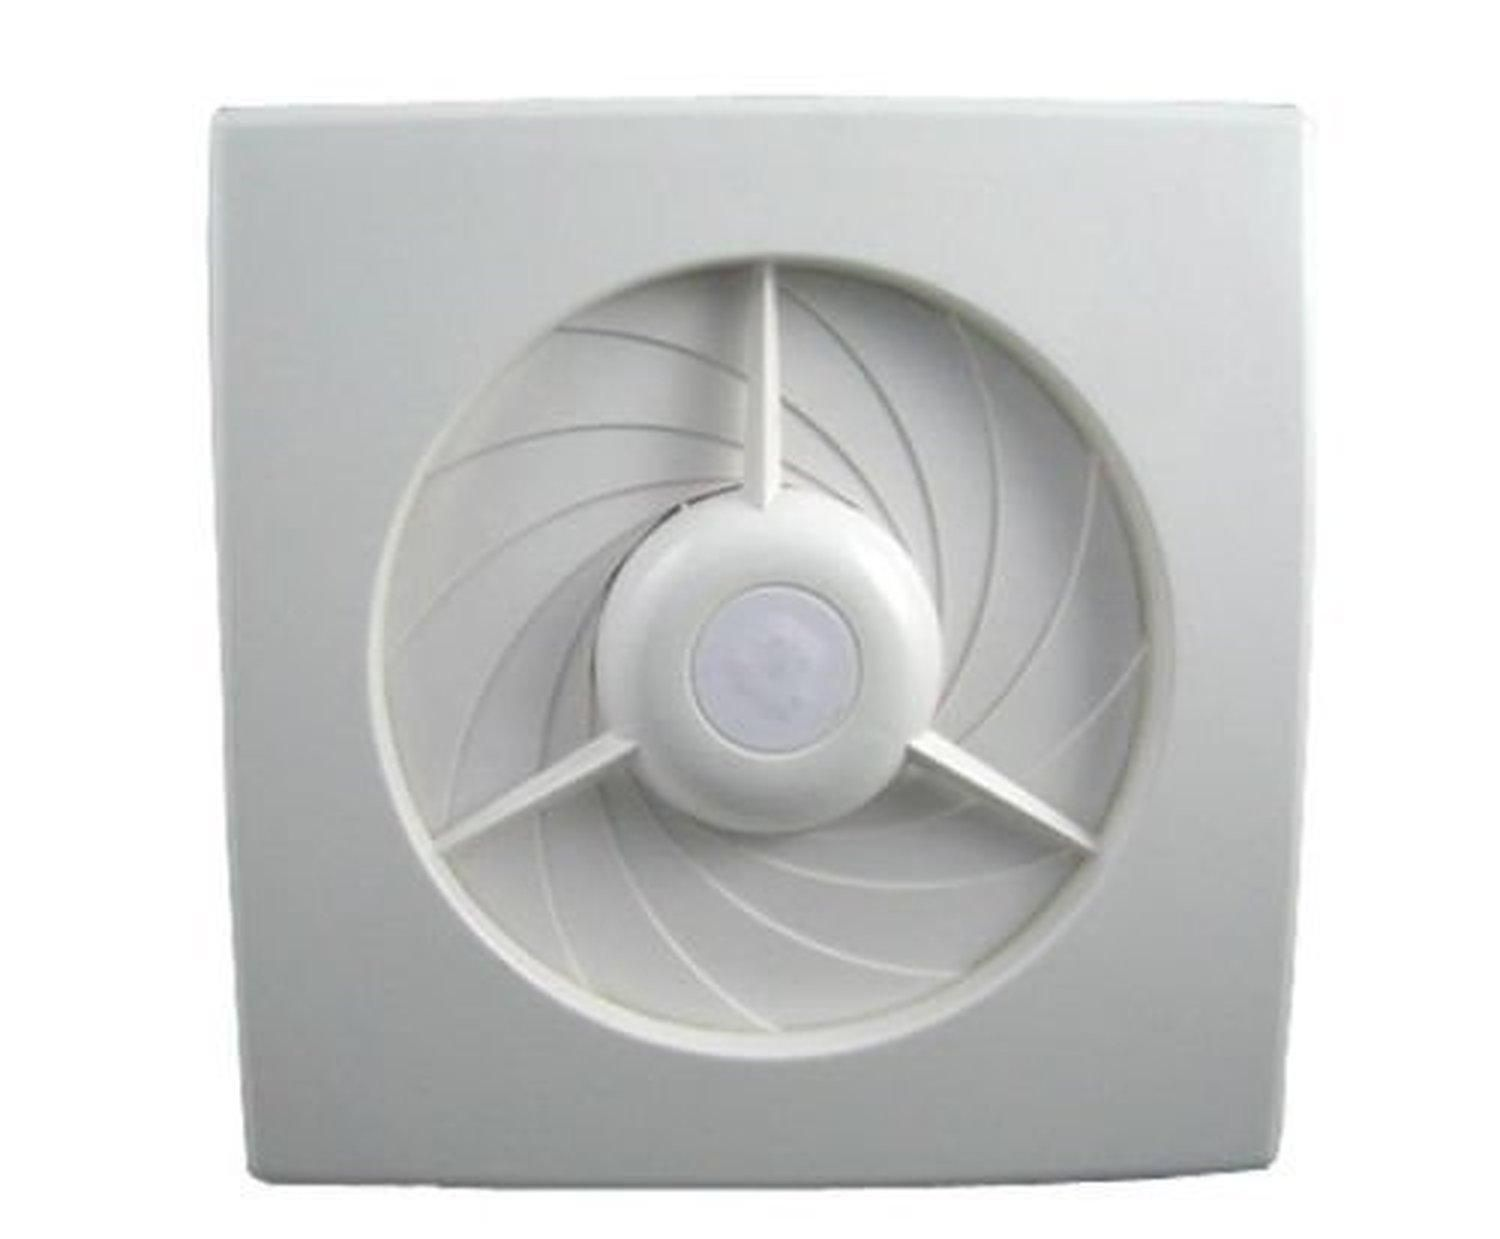 kitchen fan ventilation fans dhgate installation from com windows window mini exhaust toilets wall product bathroom